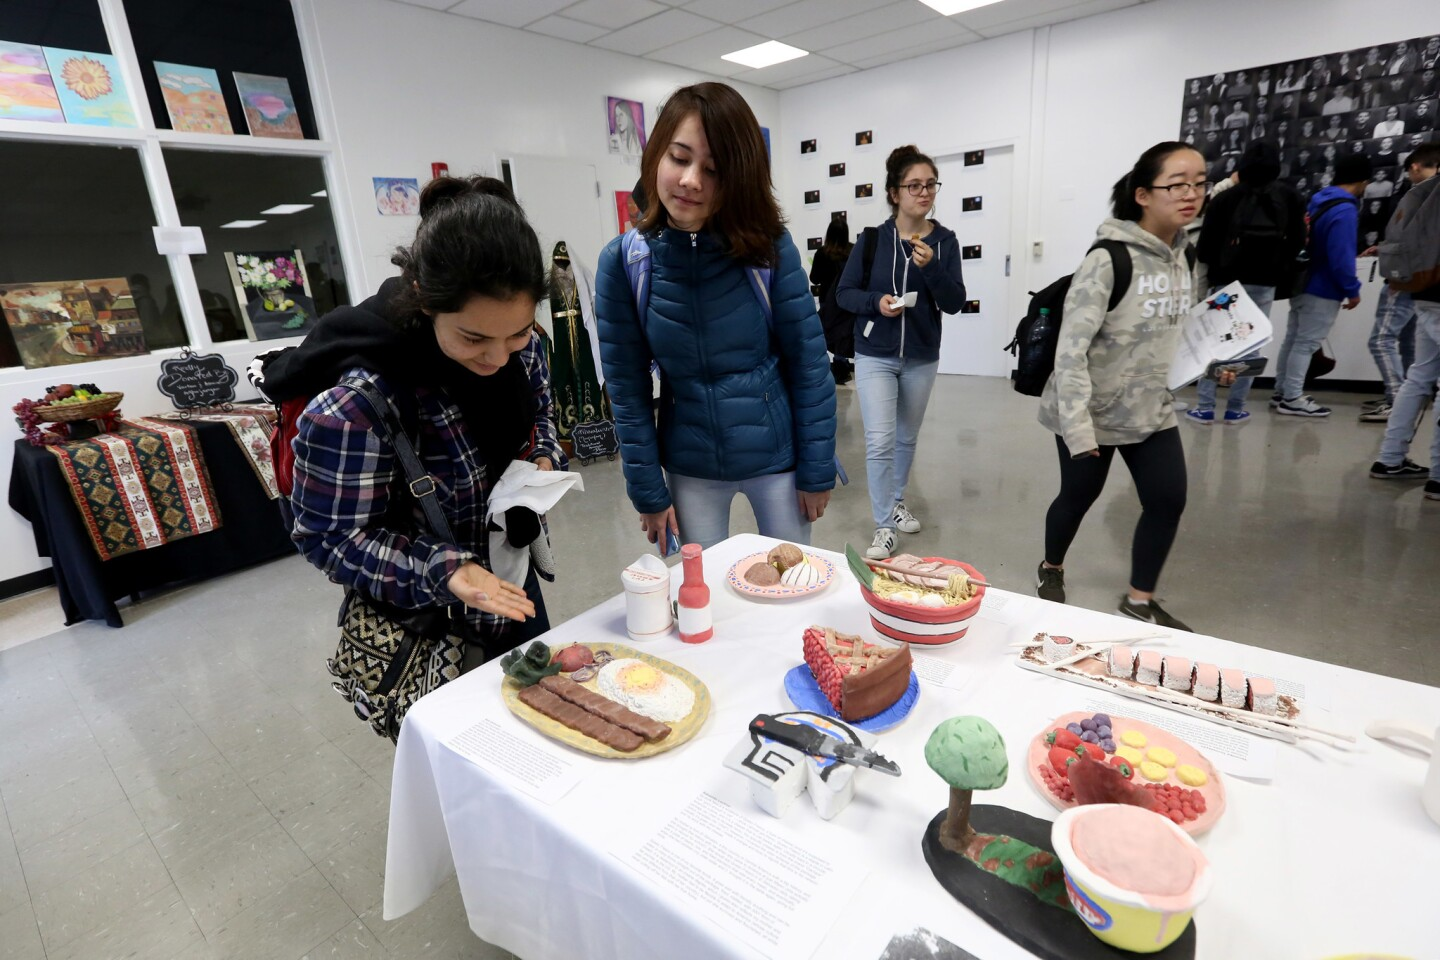 Photo Gallery: Hoover High holds inaugural art exhibit at school gallery